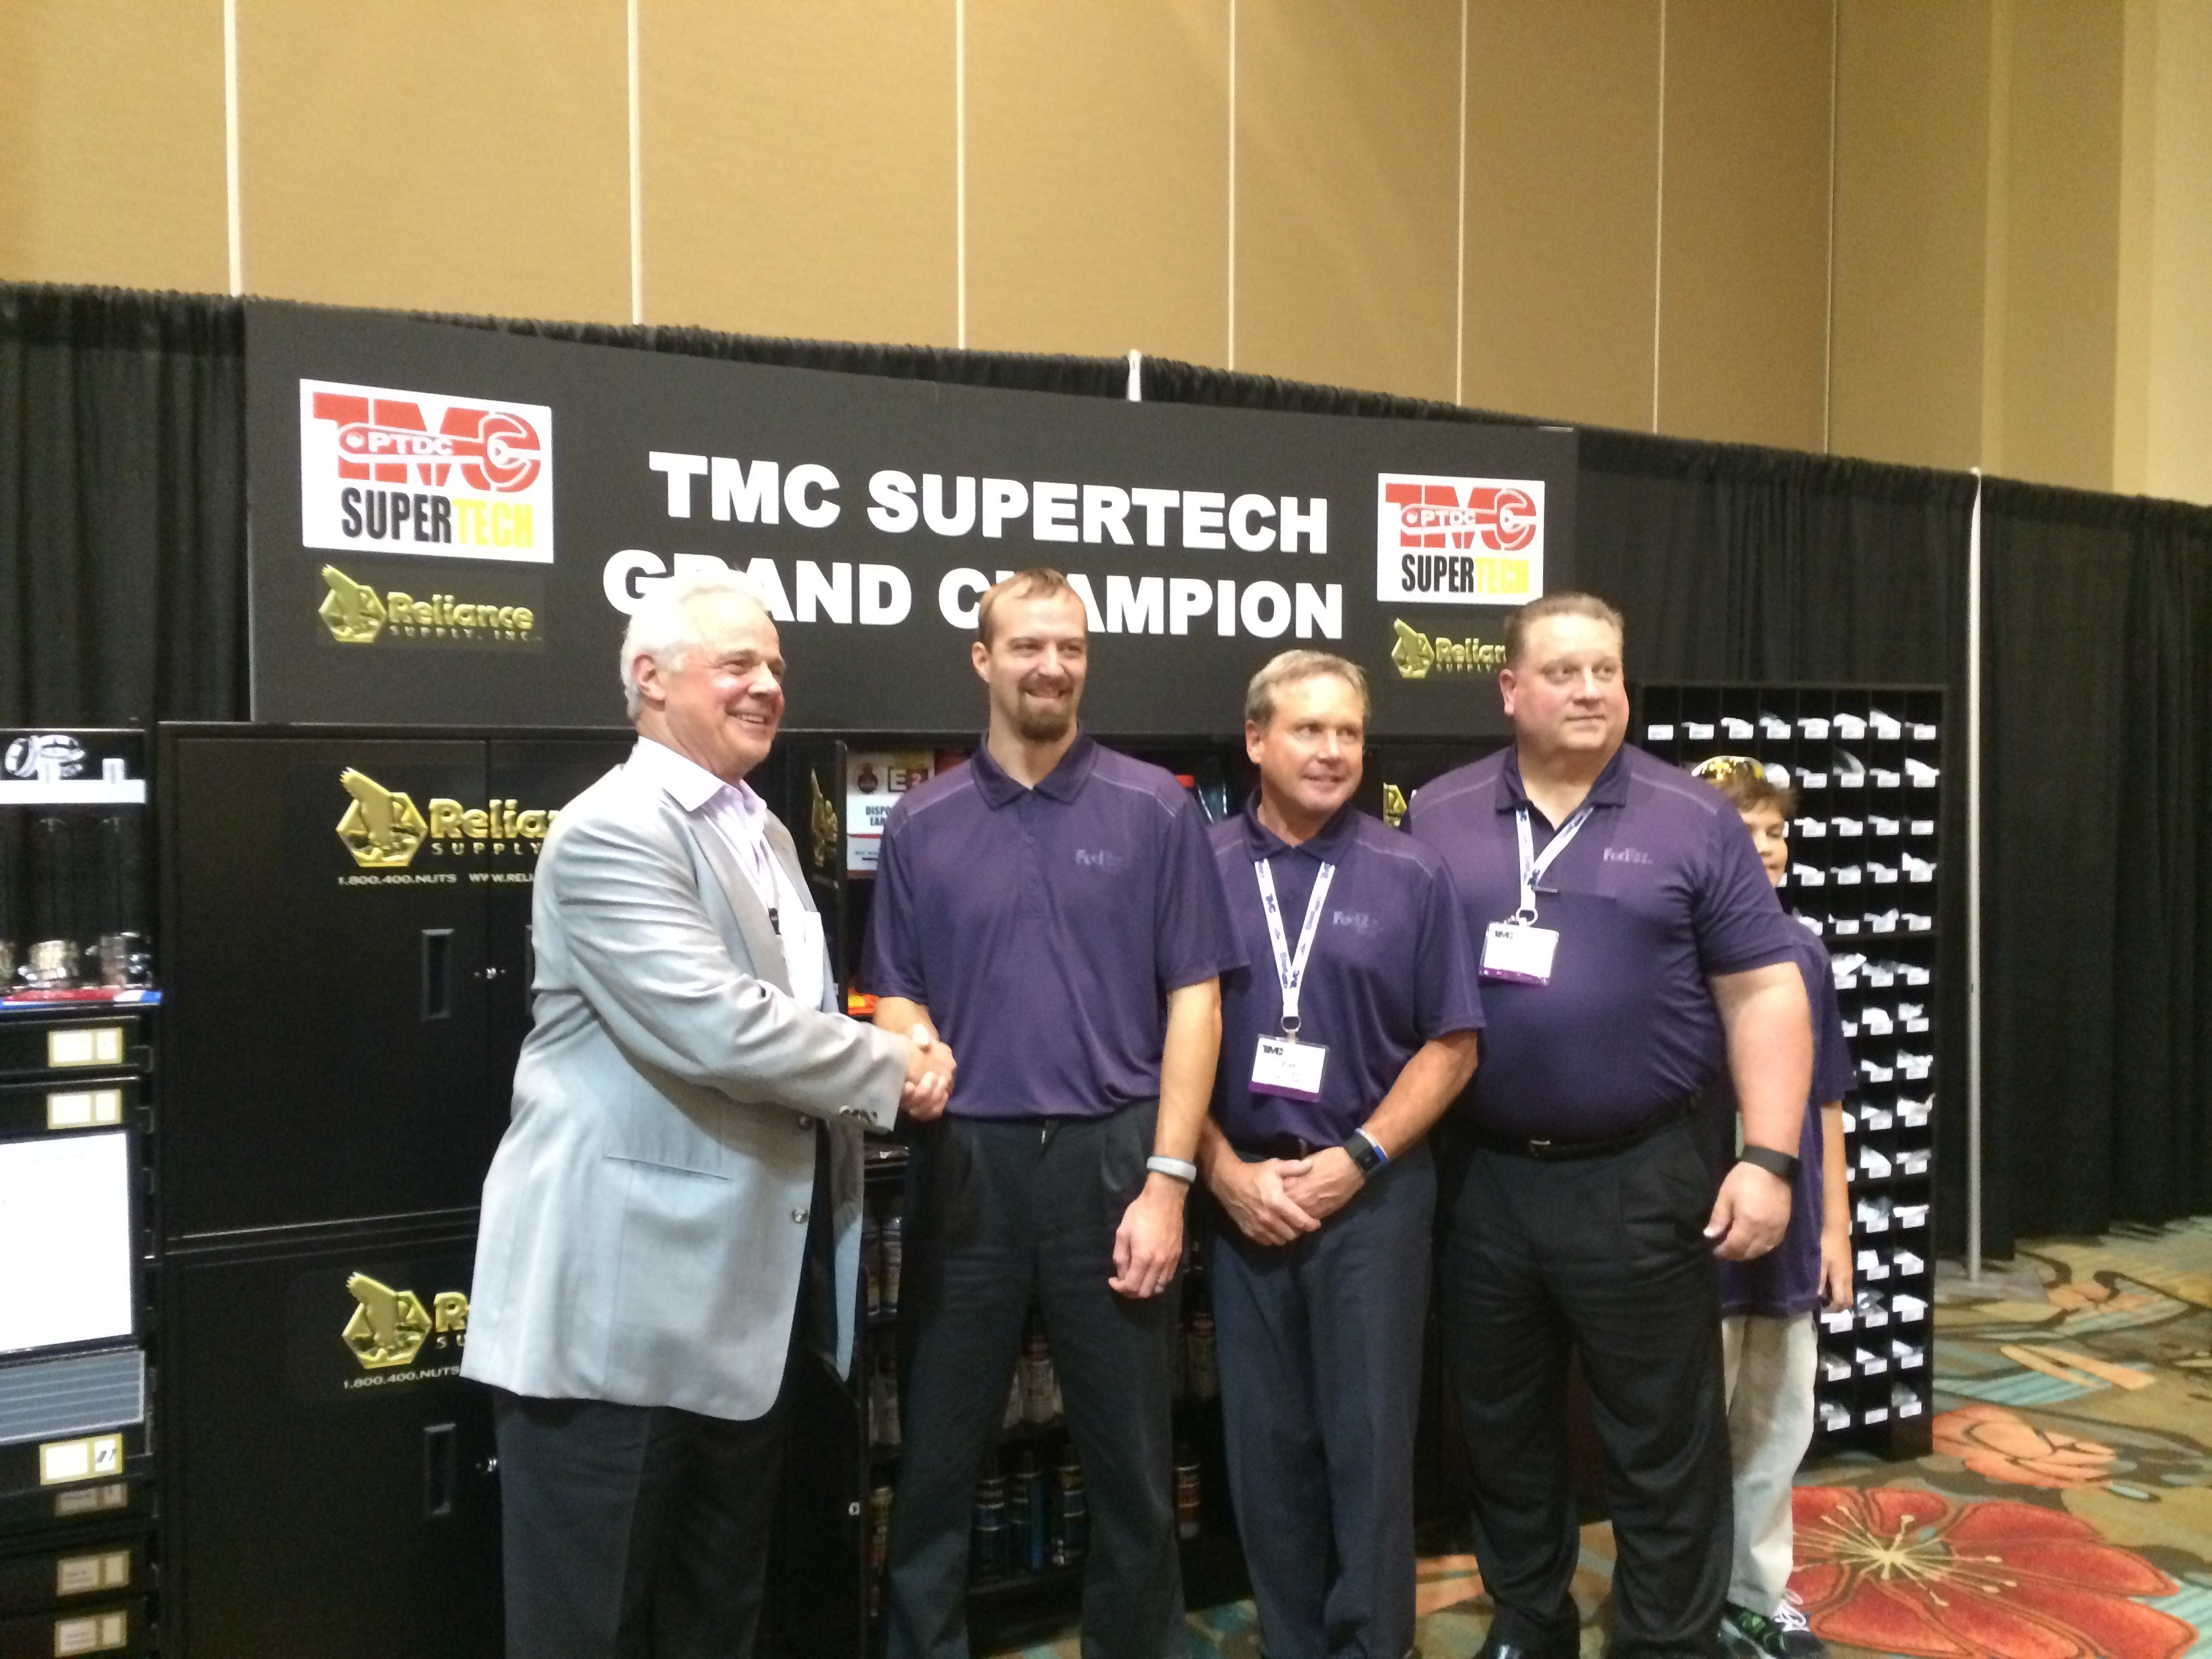 FedEx Freight scores a clean sweep at TMC's 2015 SuperTech competition